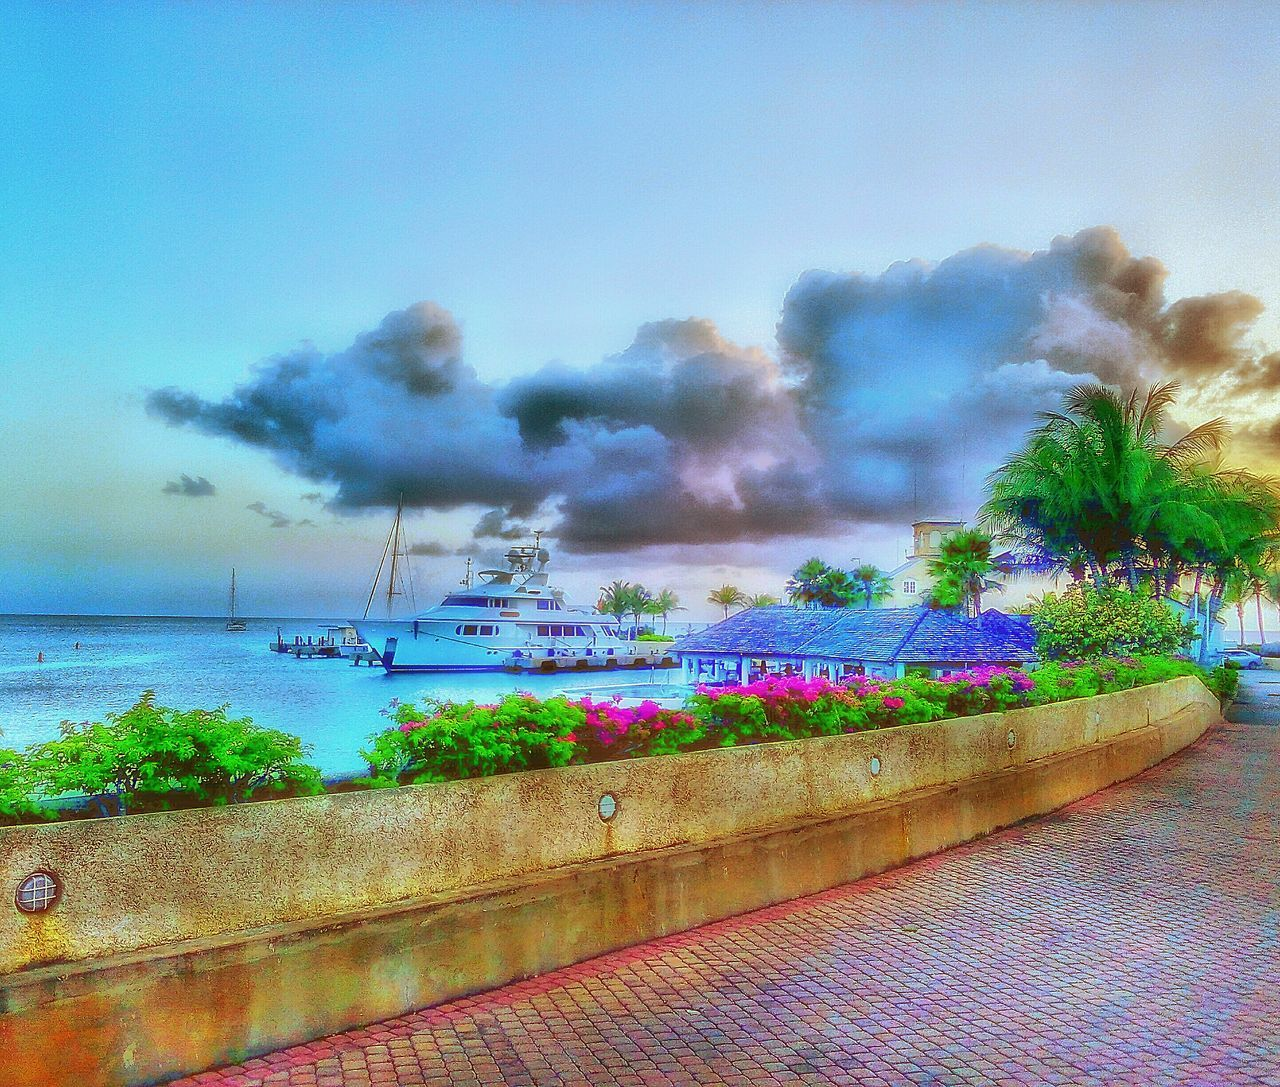 Man Made Structure Man Made Object Man Made Beauty Sea And Sky Seascape Bridge - Man Made Structure Yaught Club Yaught Waterworld Check This Out Nature Photography Boats⛵️ Port St Charles Barbados 2016 Clouds And Sky Fine Art Photography